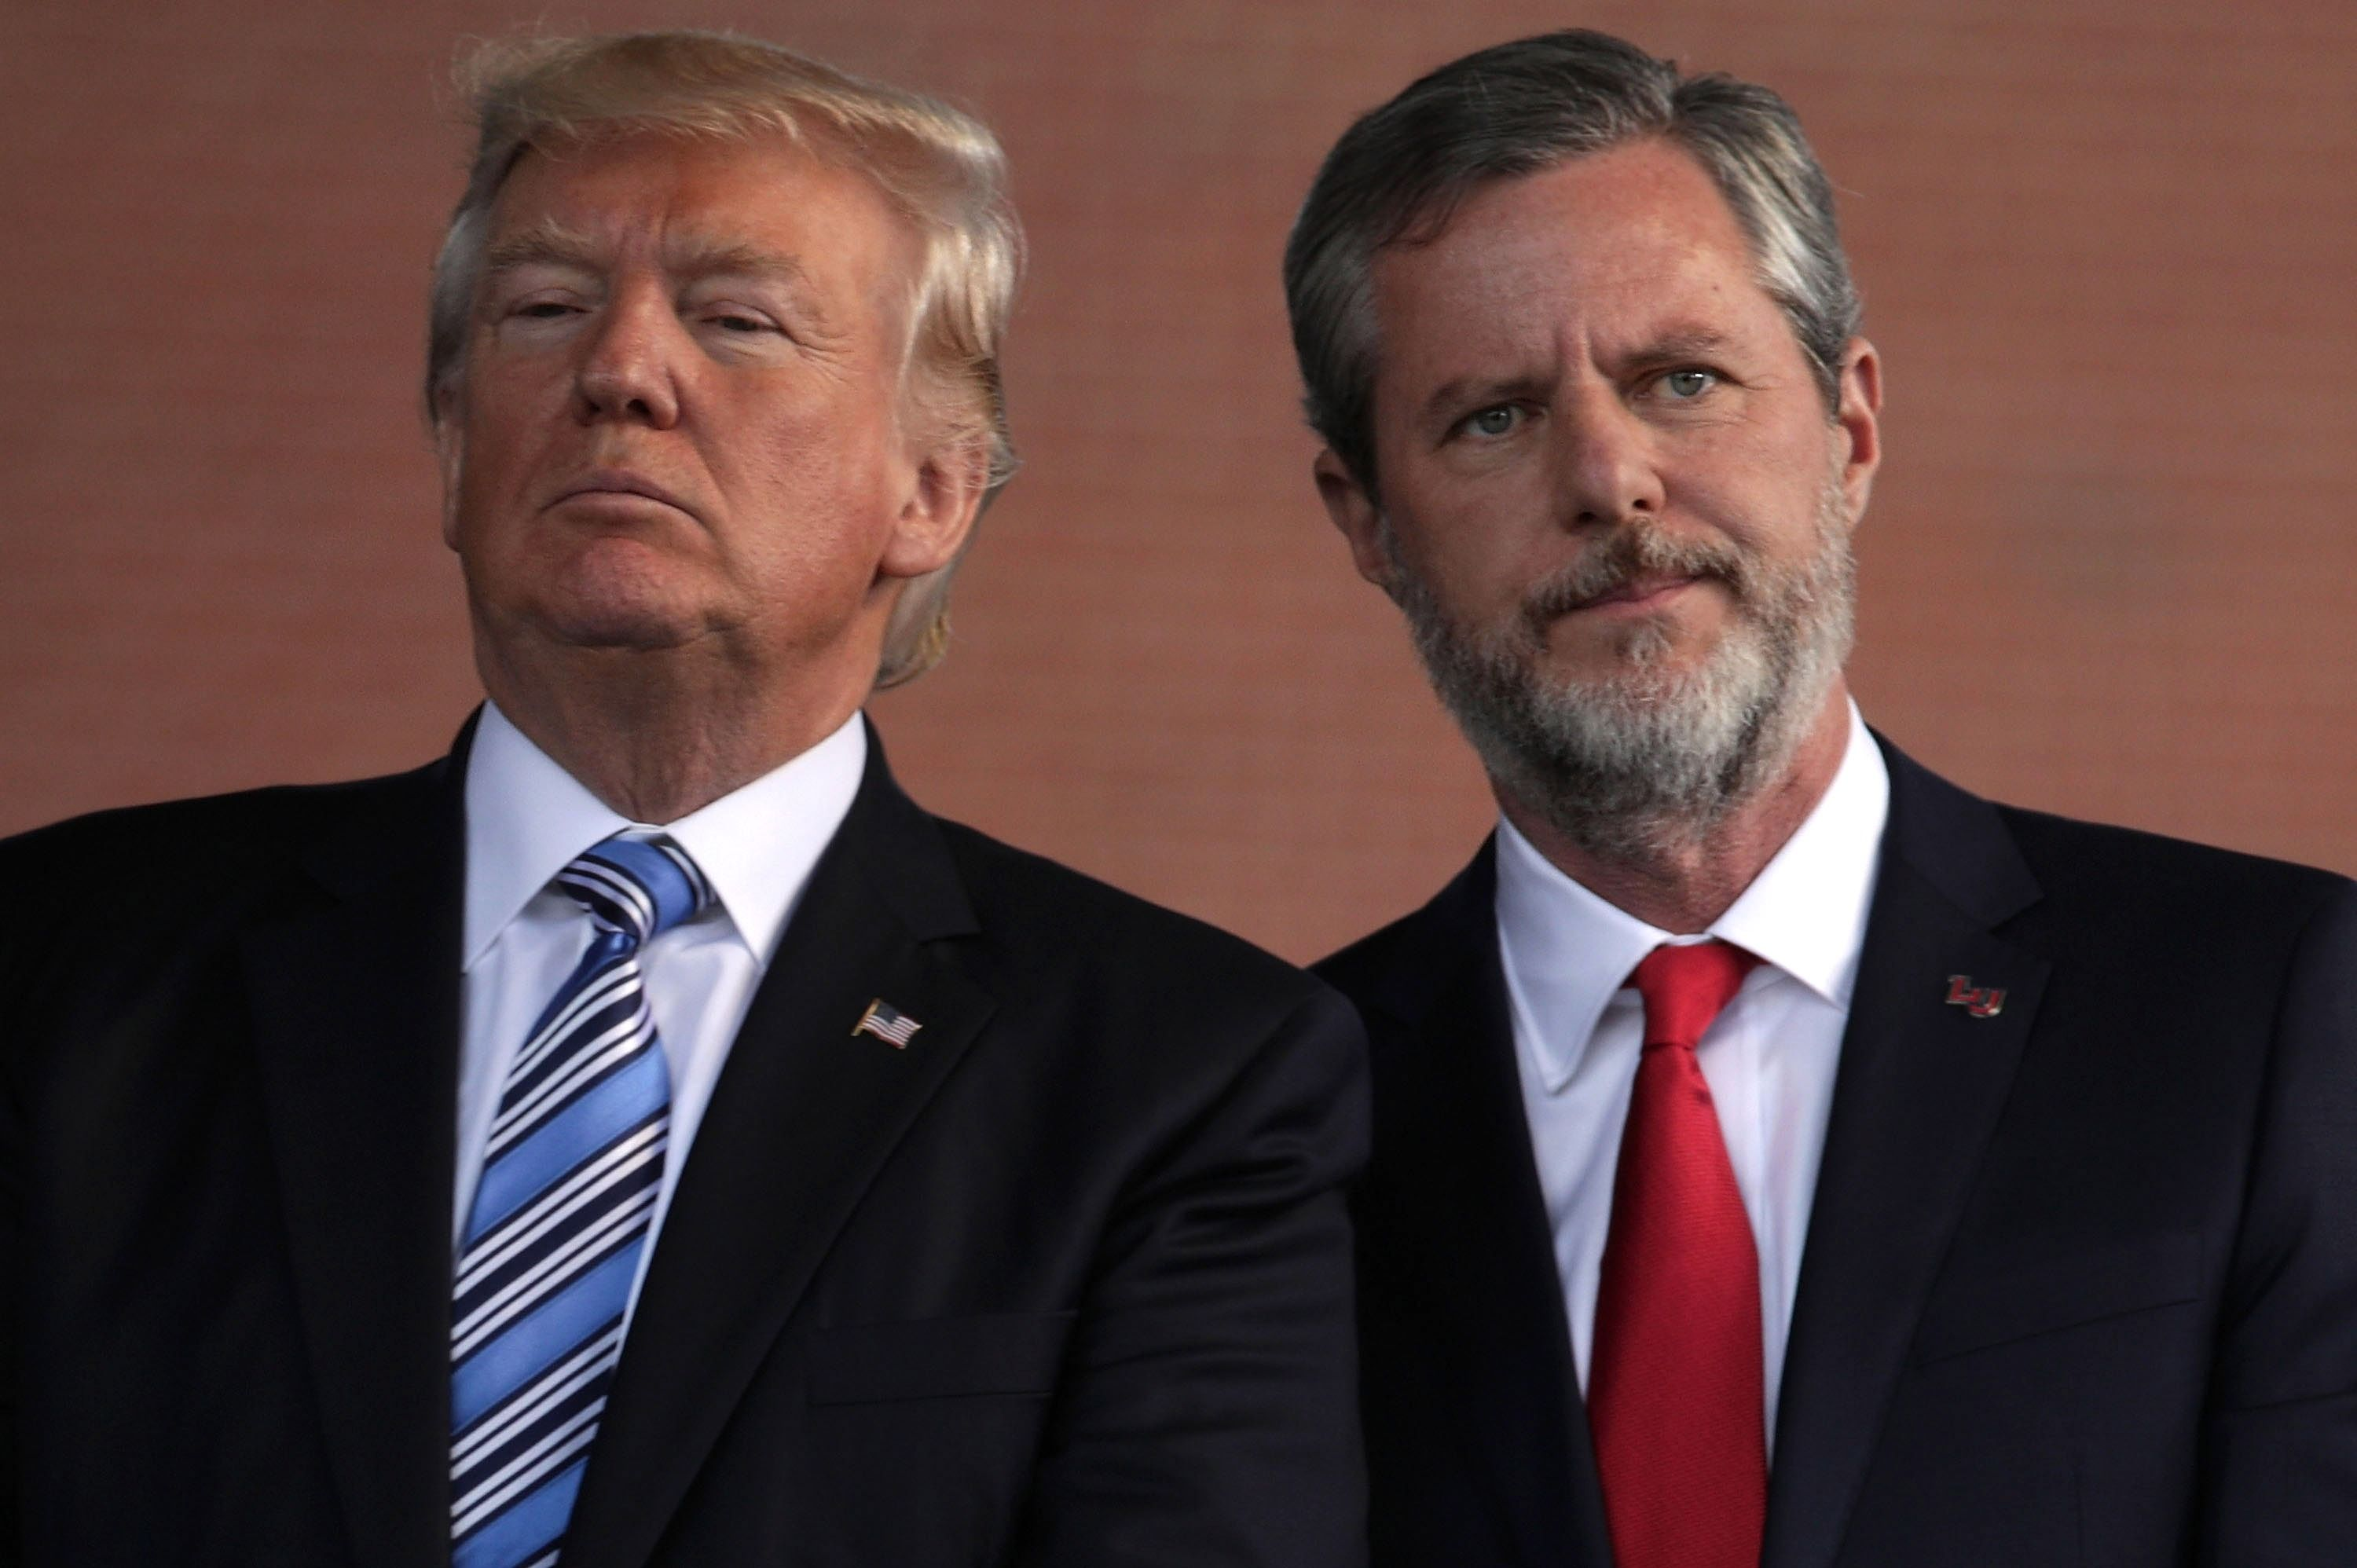 Jerry Falwell Jr. with President Trump